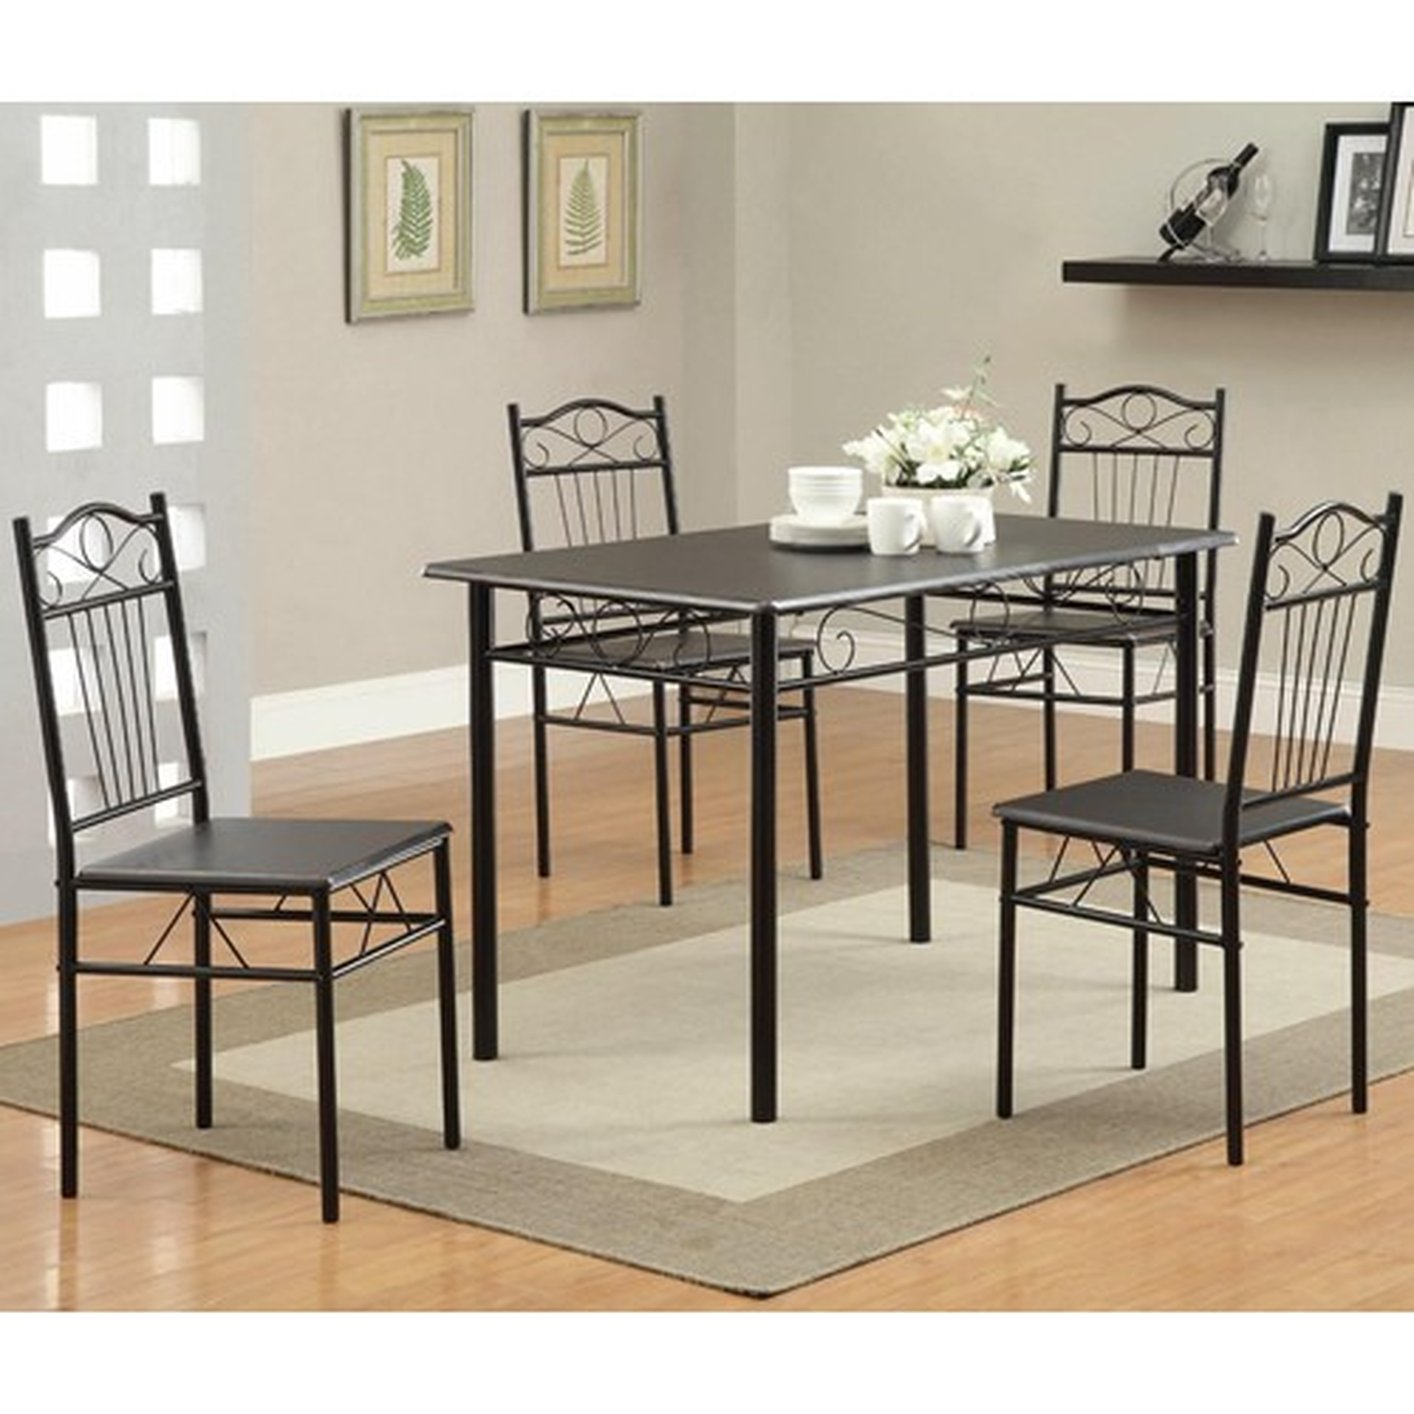 Black Dining Table And Chairs Black Metal Dining Table And Chair Set Steal A Sofa